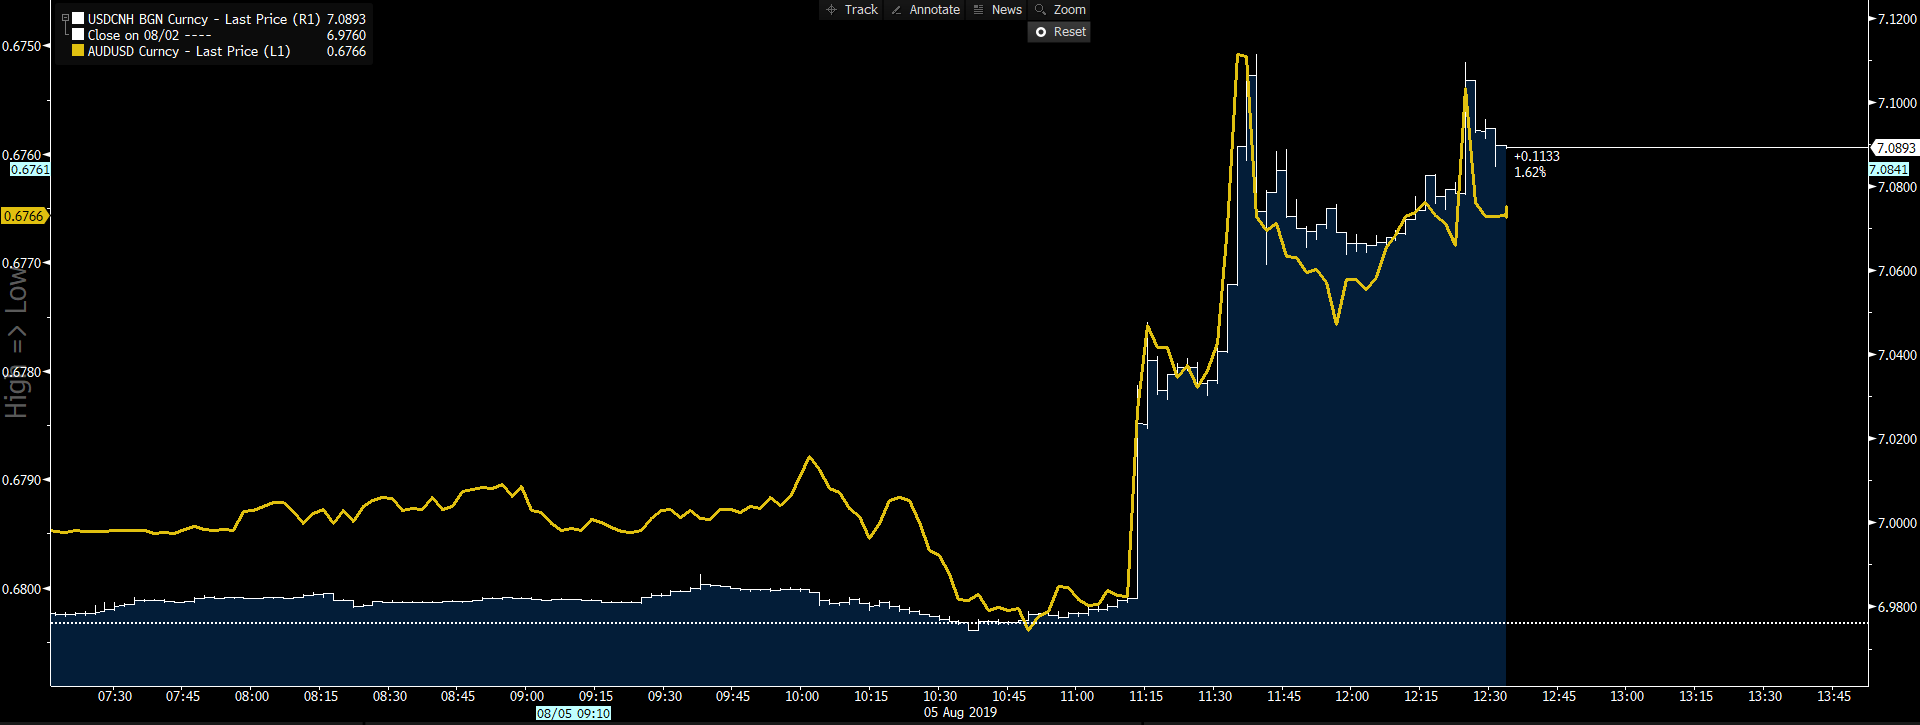 White: USDCNH. Yellow: AUDUSD (inverted).